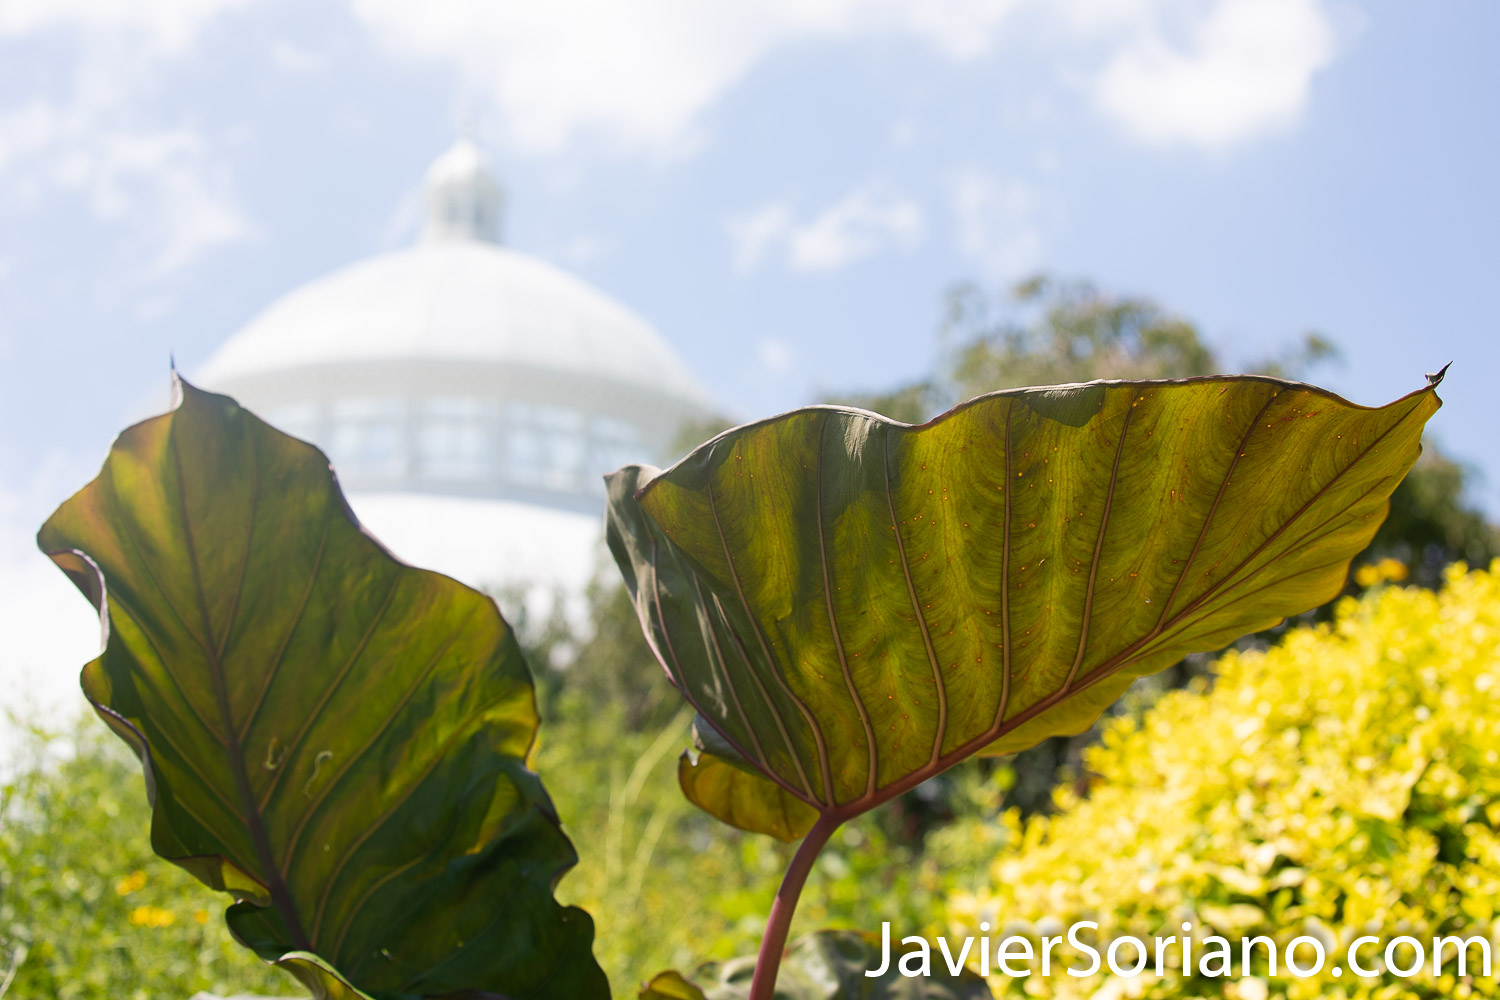 Wednesday, August 5, 2020. New York City – The New York Botanical Garden in the Bronx closed its doors when the coronavirus pandemic started in New York City. After a few months, the NYBG reopened to the public on Tuesday, July 21, 2020. Photo by Javier Soriano/www.JavierSoriano.com